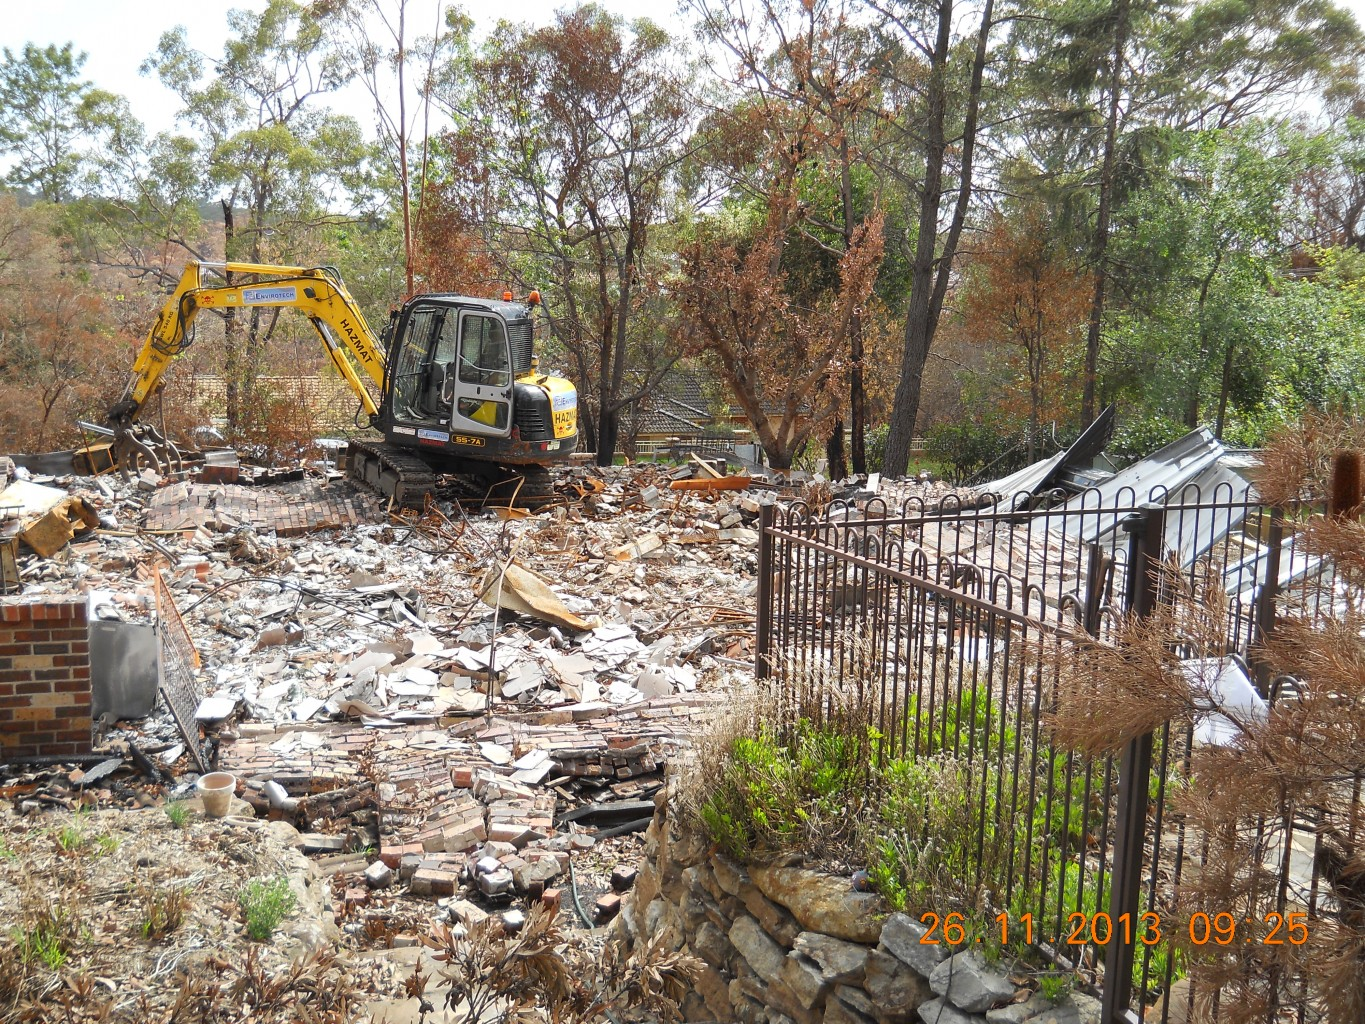 Excavator With Claw Moving Rubble And Debris